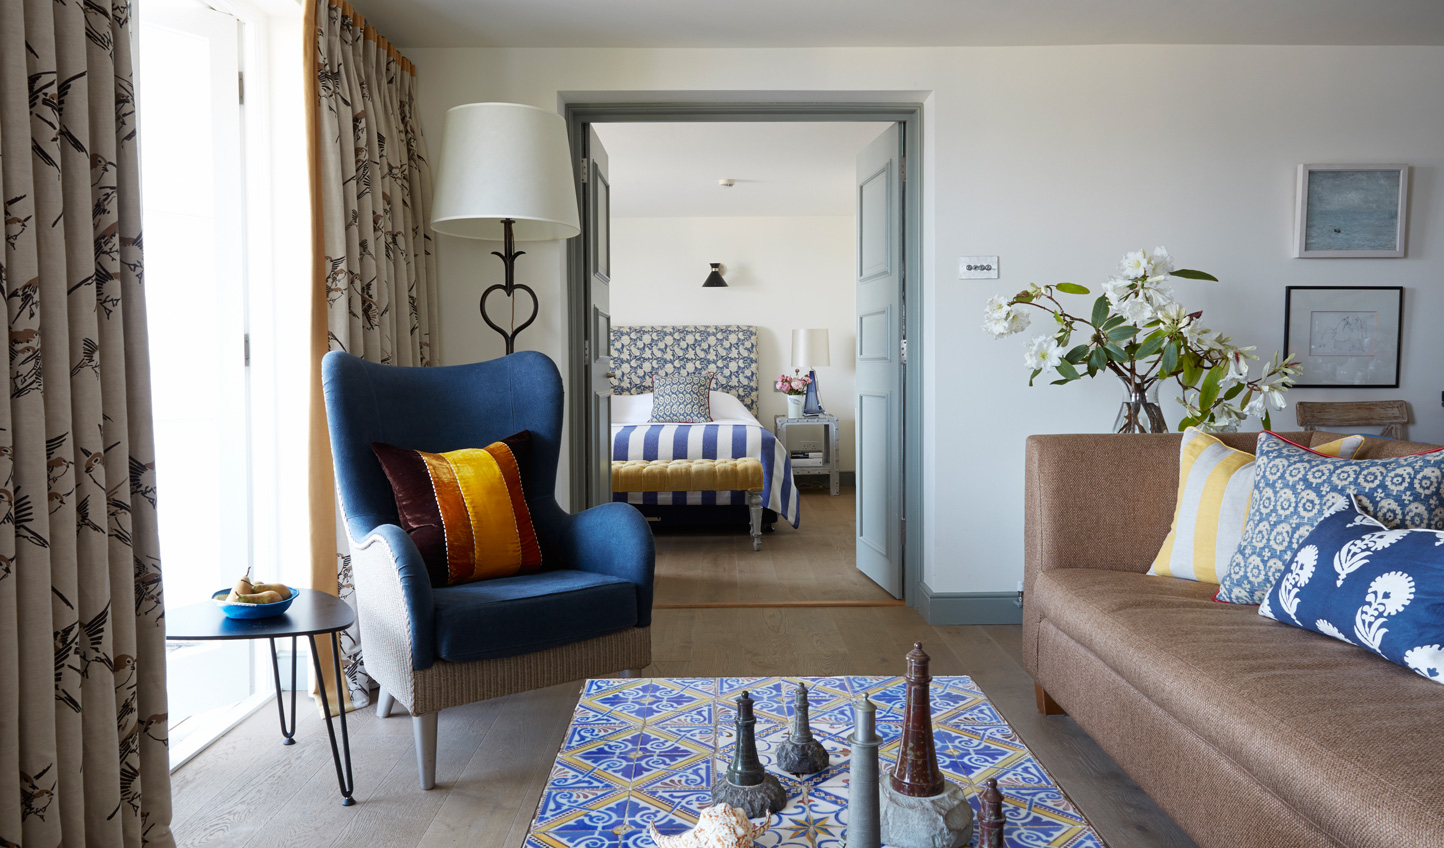 Hotel Tresanton makes for the perfect family getaway in Cornwall